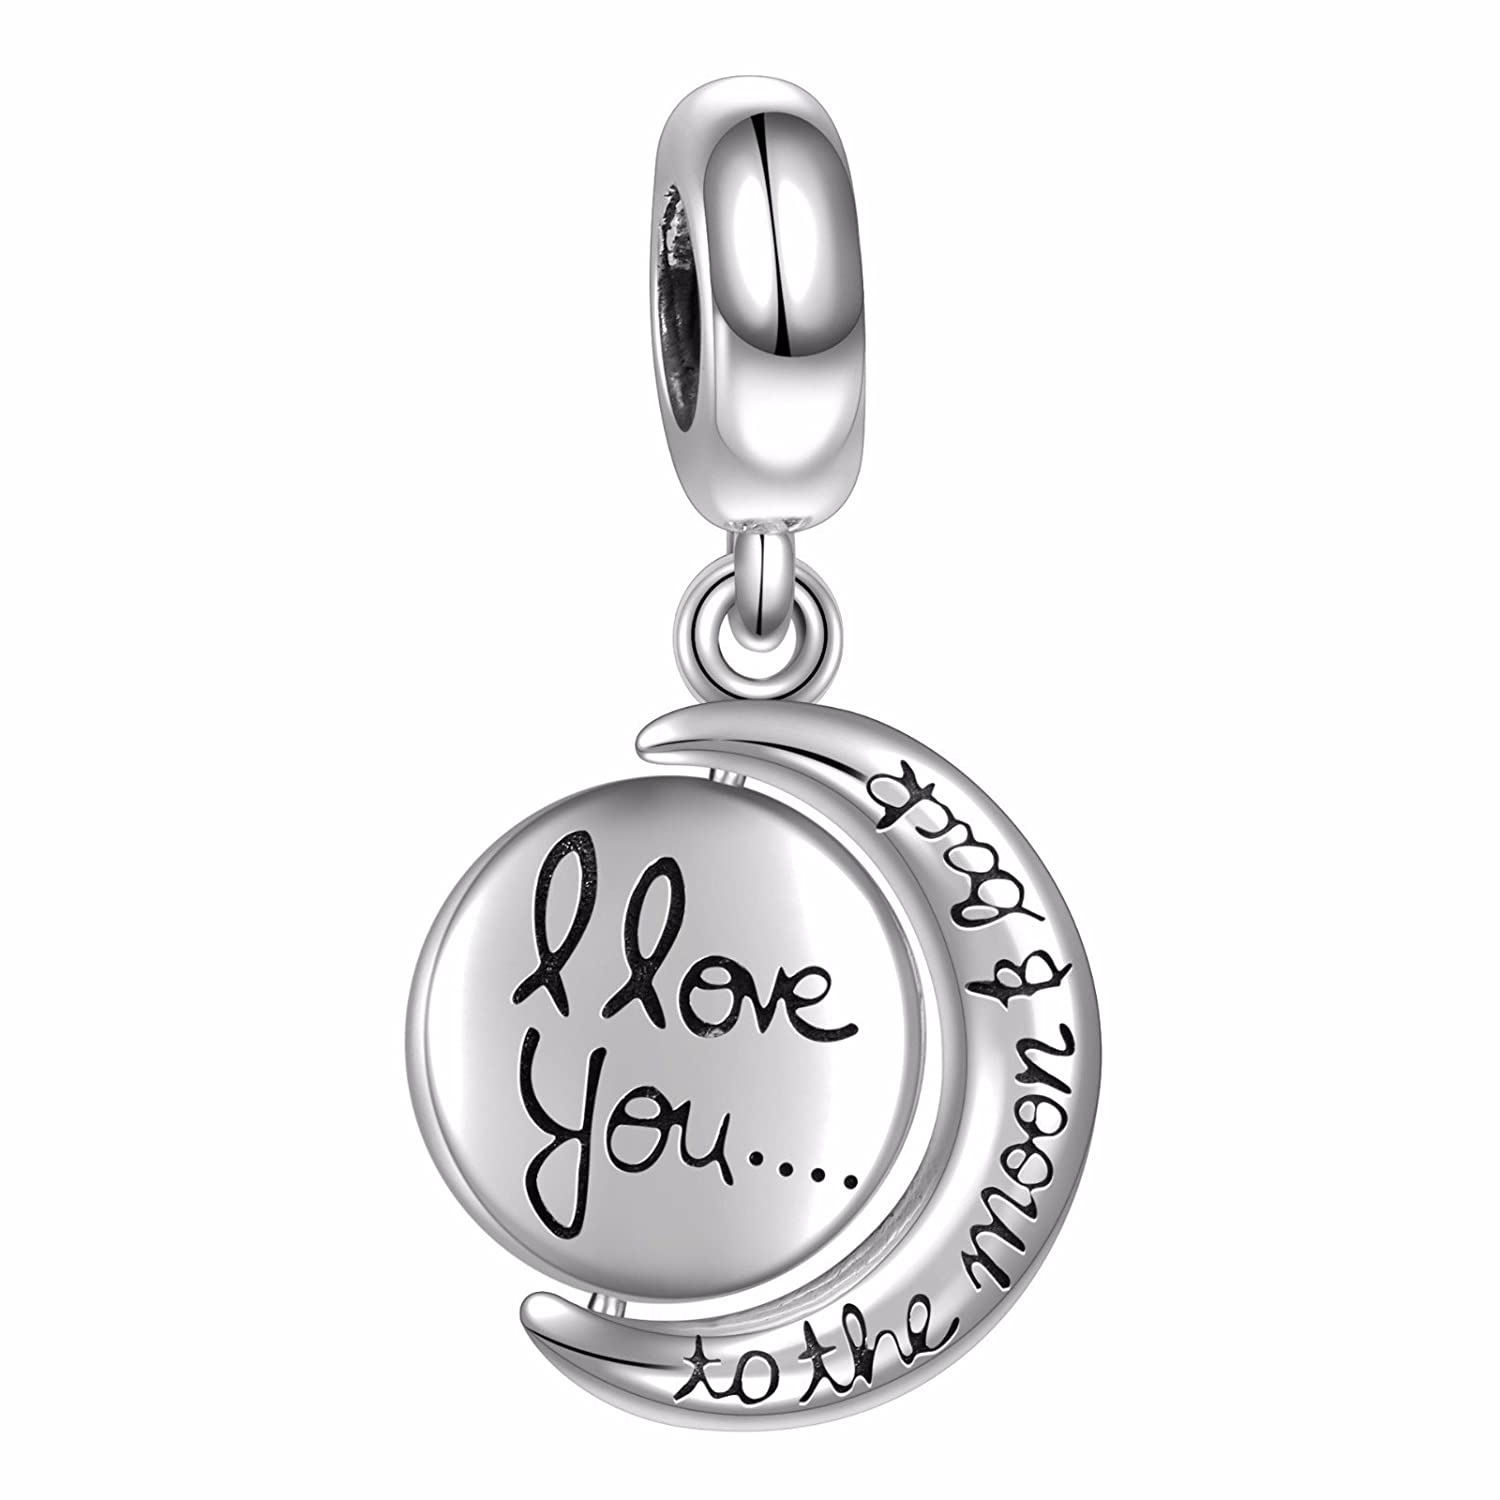 Hqcrow I Love You To The Moon And Back 925 Sterling Silver Double Dangle Charm For European Bracelets by Hqcrow